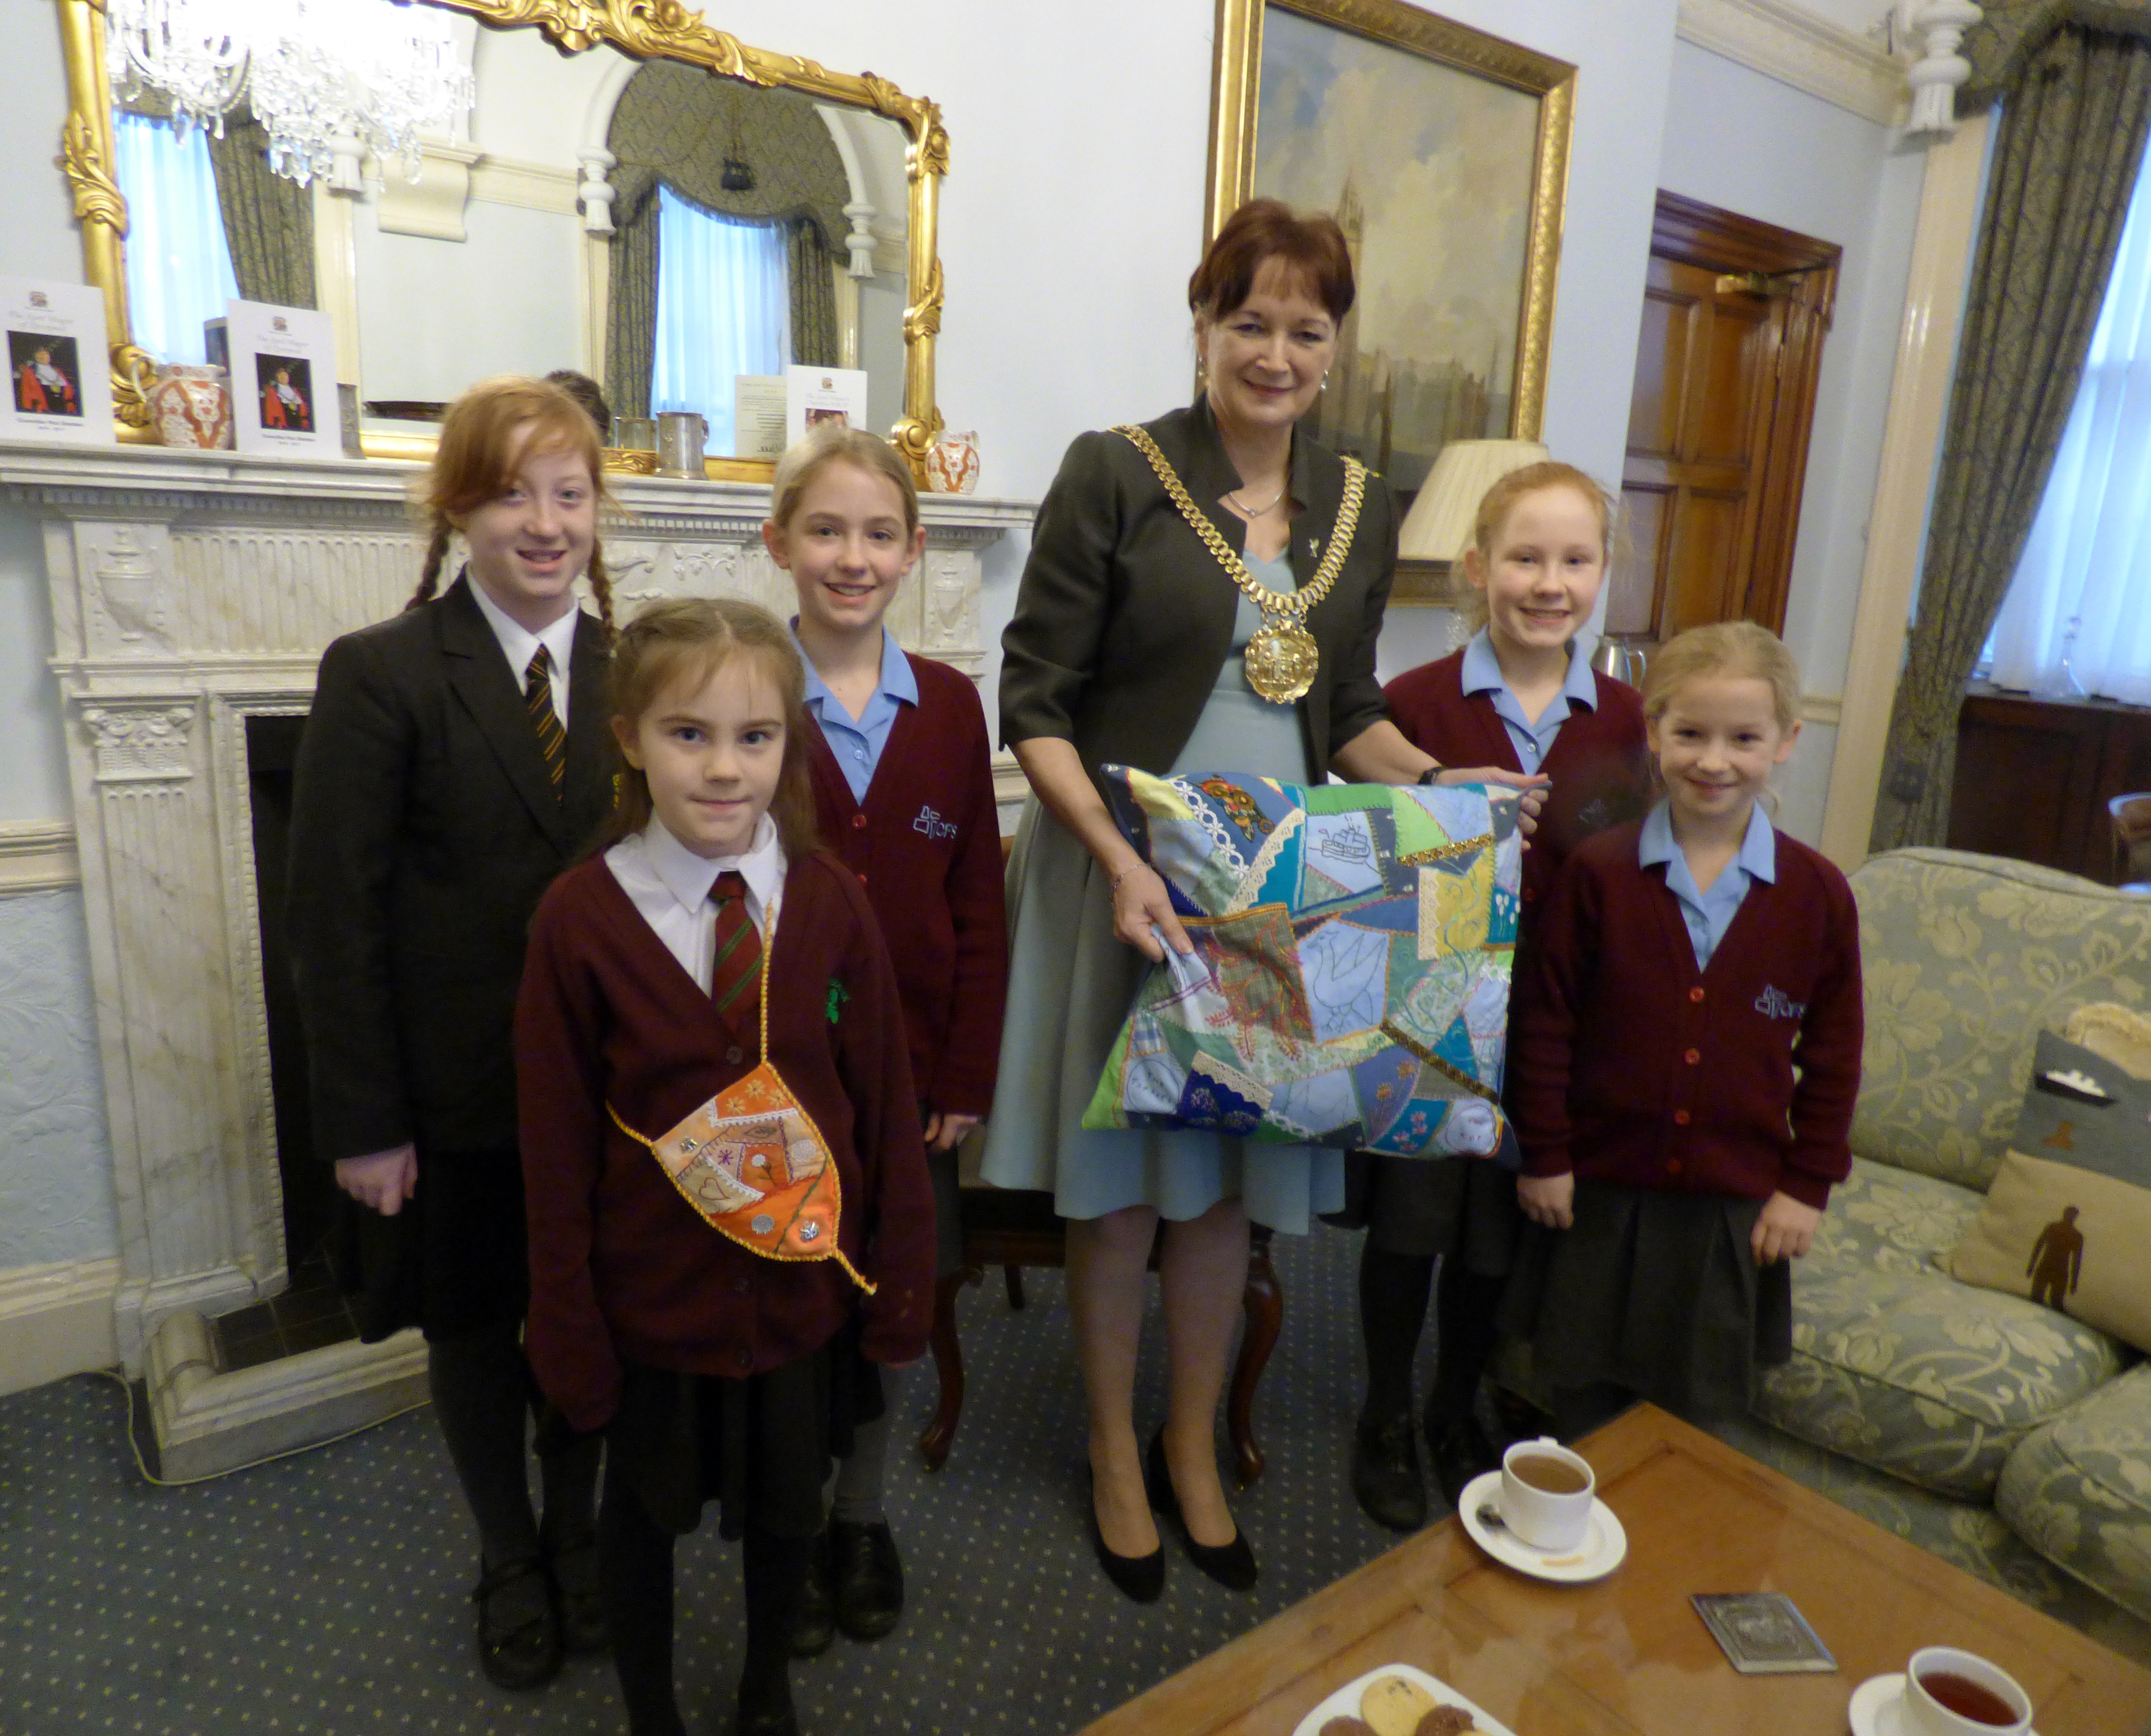 Members of Merseyside YE presented Liverpool Lord Mayor Cllr. Roz Gladden with a cushion for Lady Mayoress' Parlour, Jan 2017